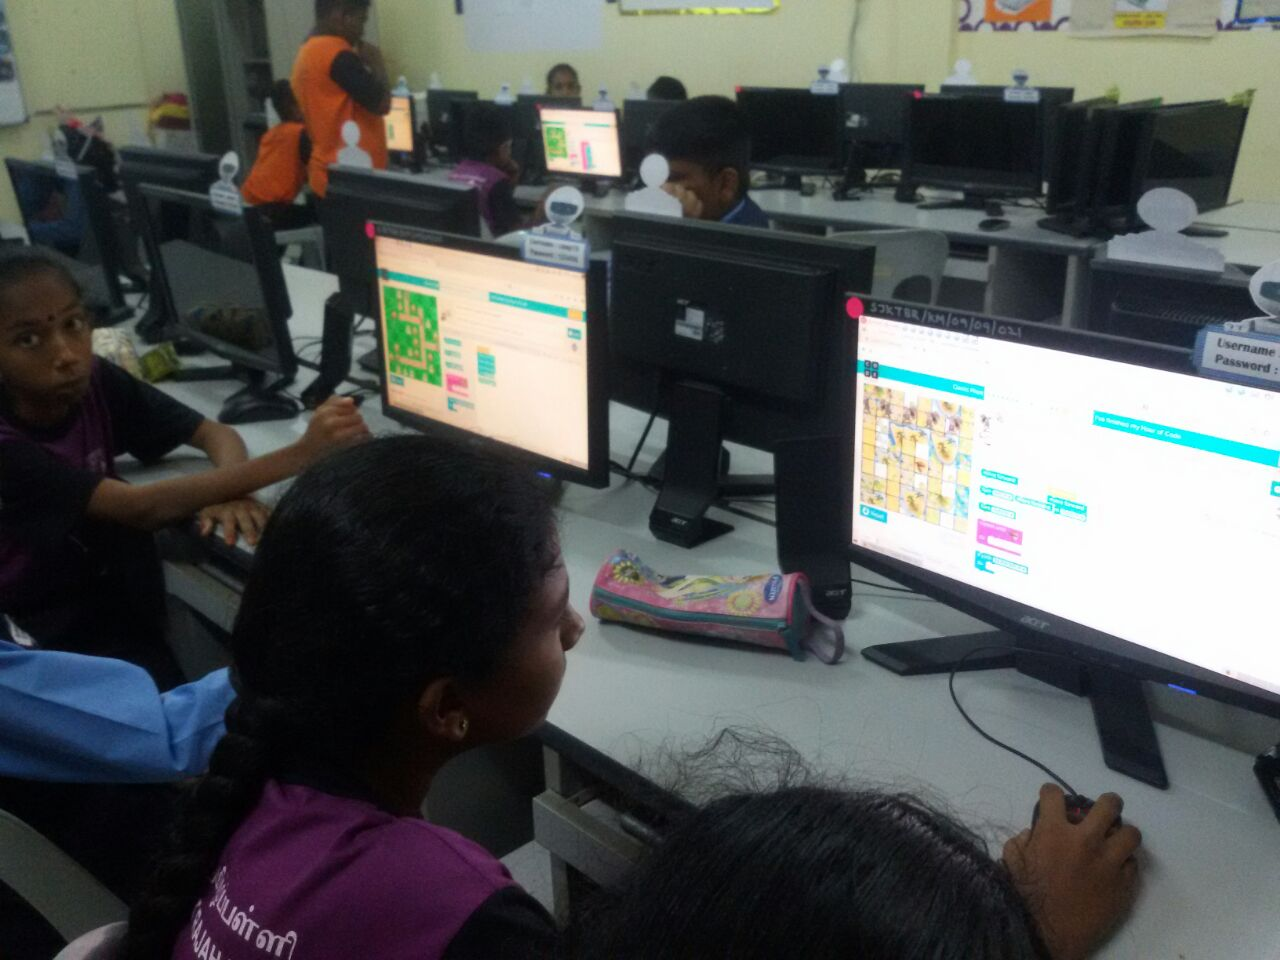 ict lab 2 The information communication technology syllabus combines theoretical and practical studies focusing on the ability to use common software applications, including word processors, spreadsheets, databases, interactive presentation software, e-mail, web browsers and website design.